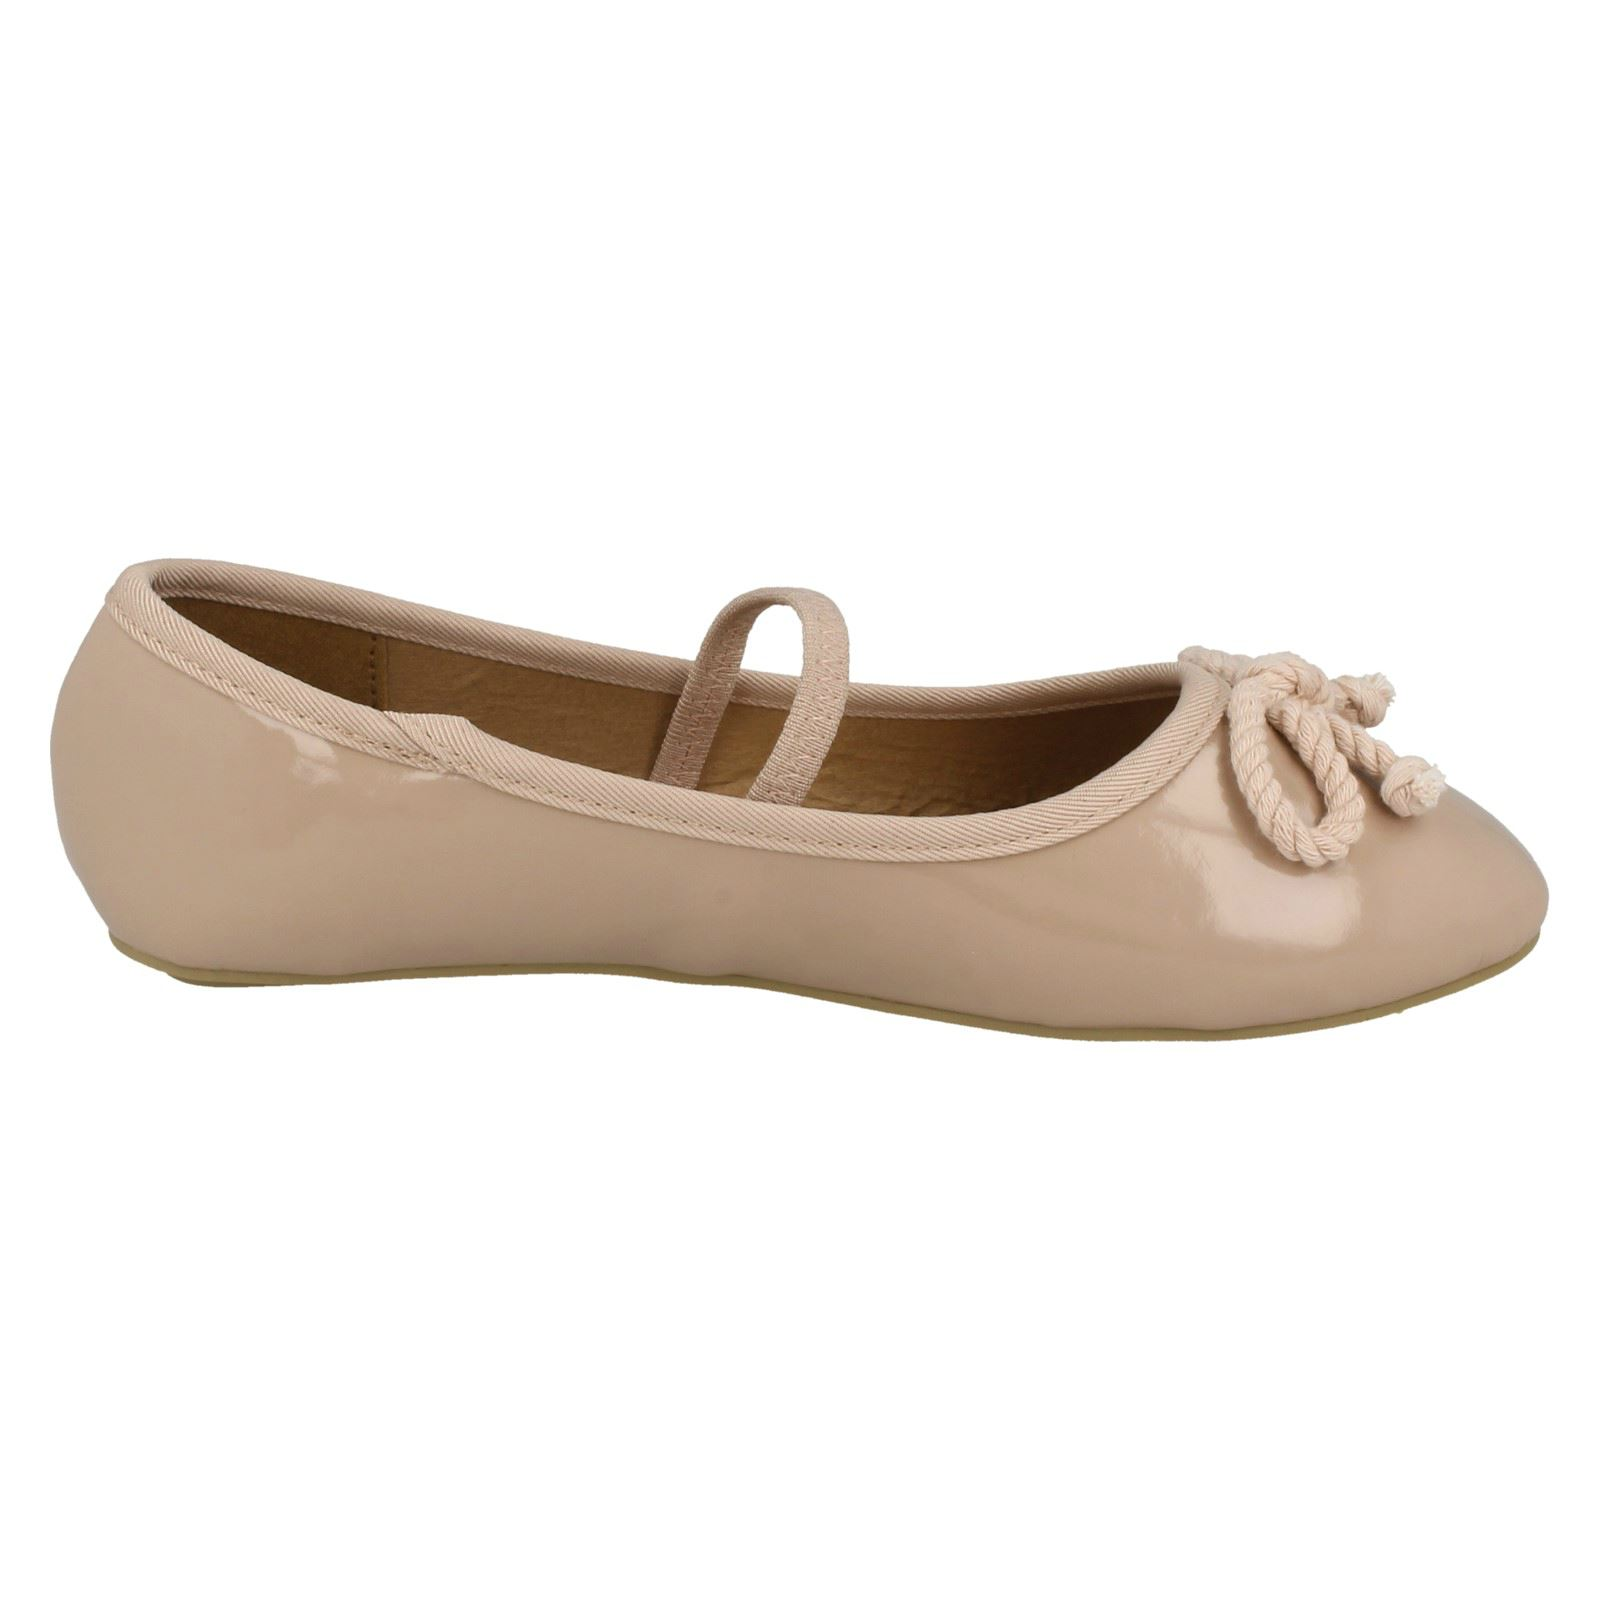 Girls Spot On Elastic Bar Ballerinas The Style H2429 ~ N